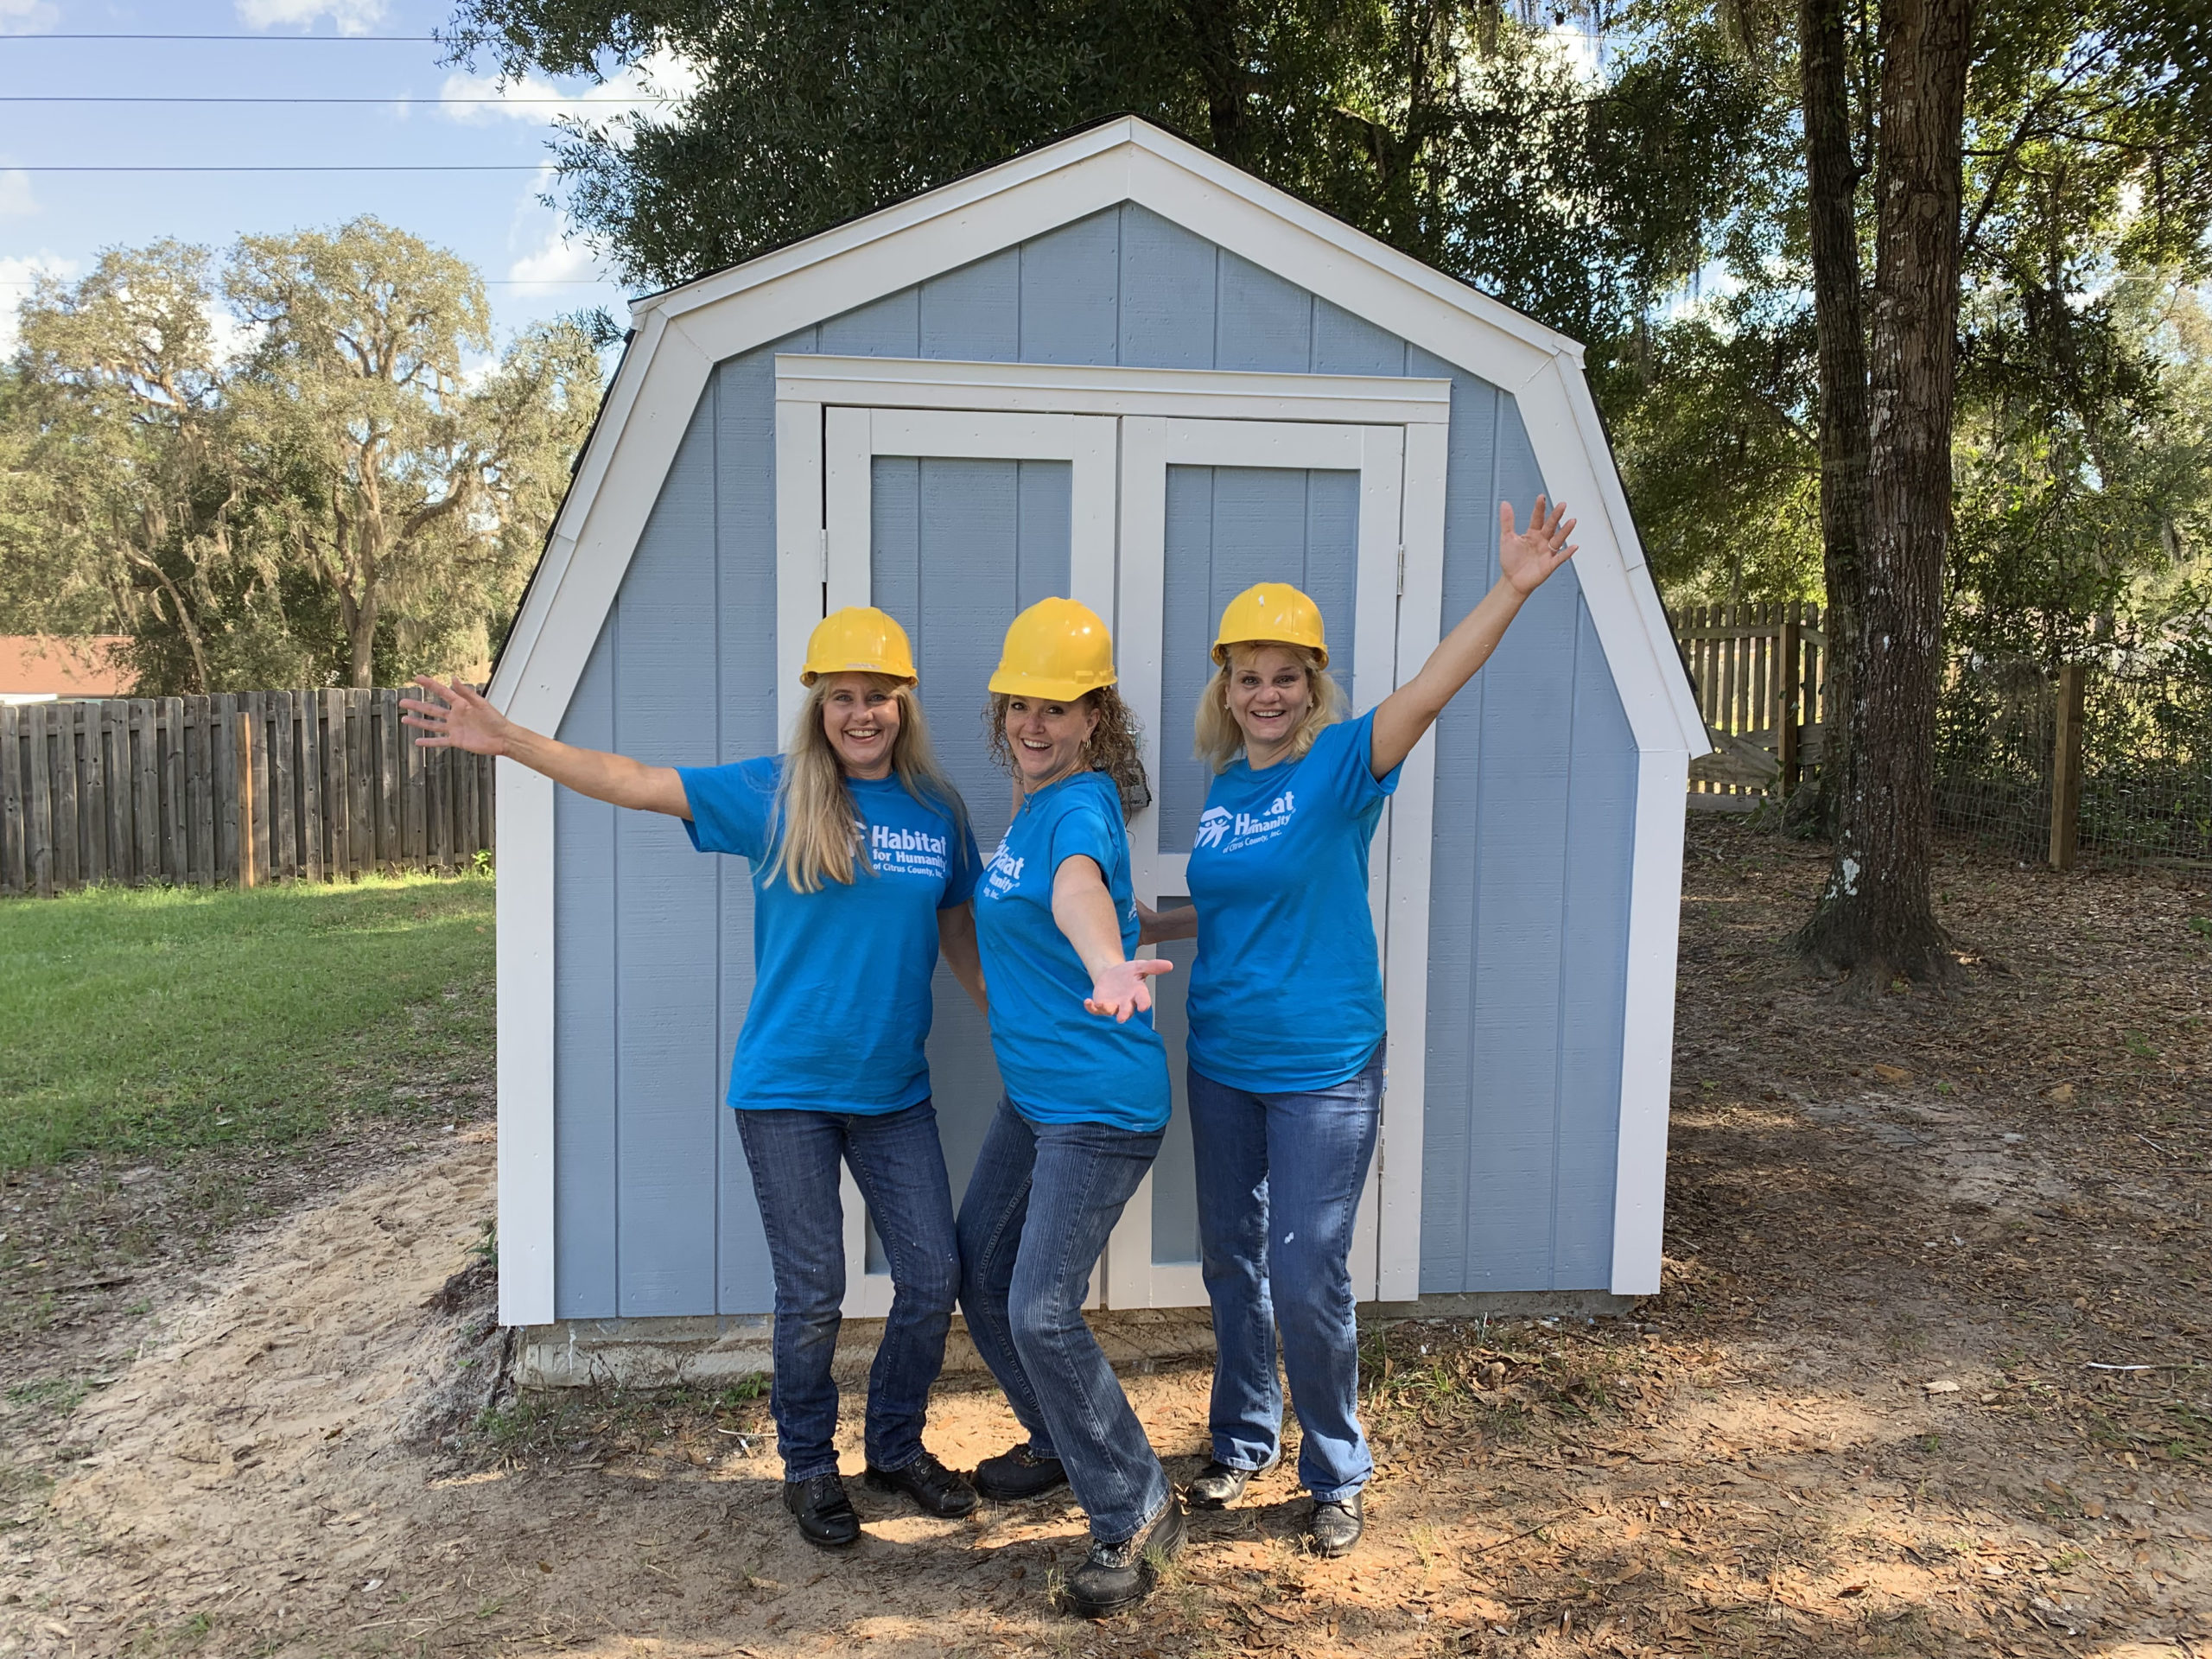 THe Florida office volunteers for Habitat for Humanity